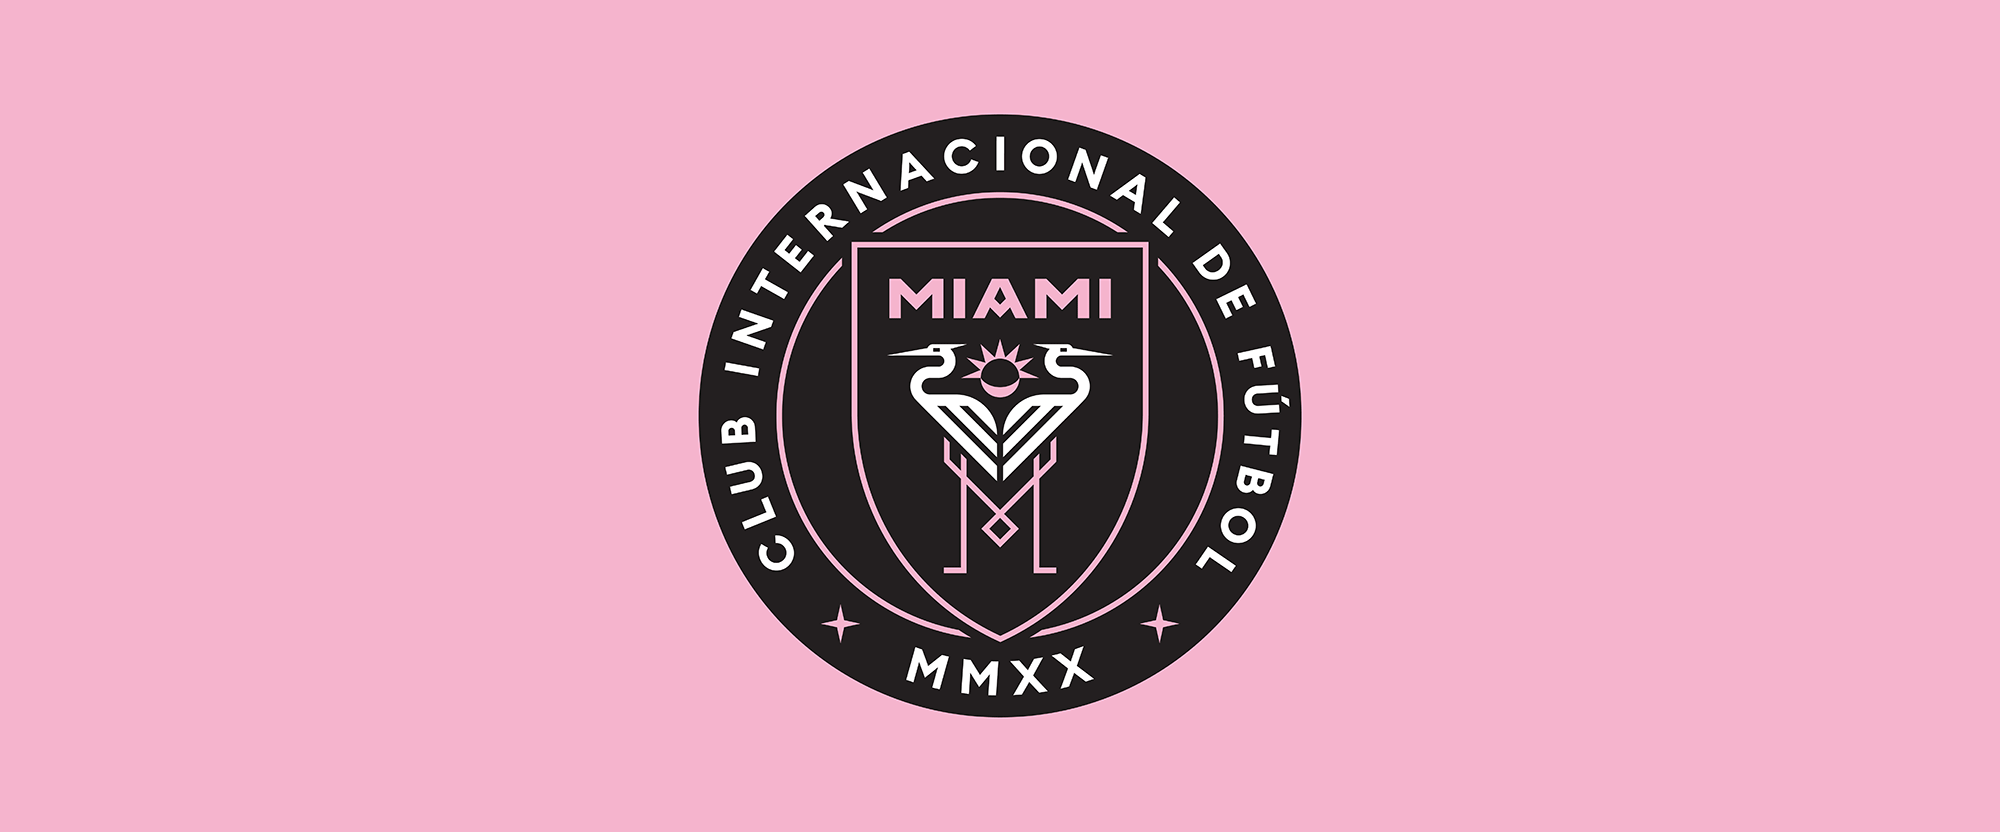 New Logo for Club Internacional de Fútbol Miami by Doubleday & Cartwright